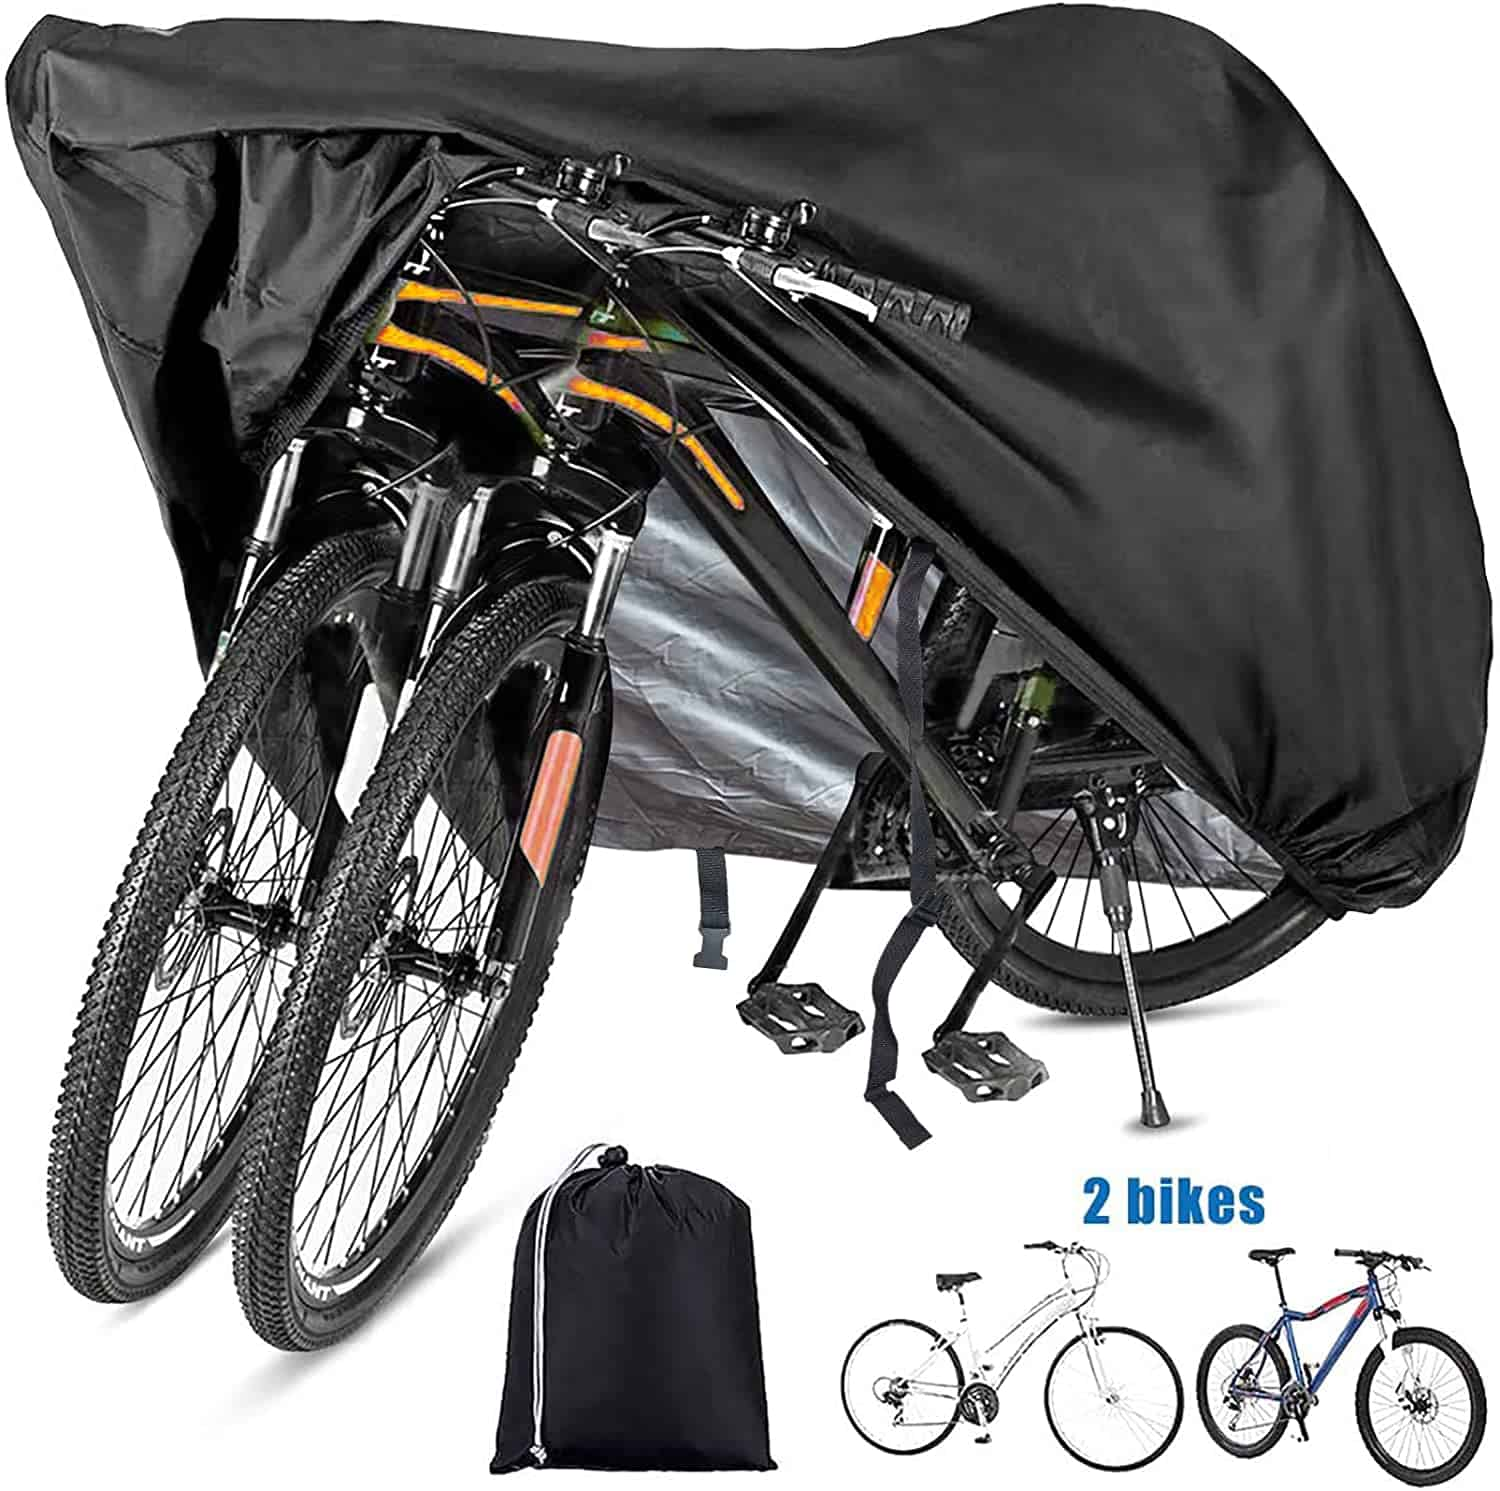 Best Bike Cover: Szblnsm Waterproof Outdoor Bike Cover